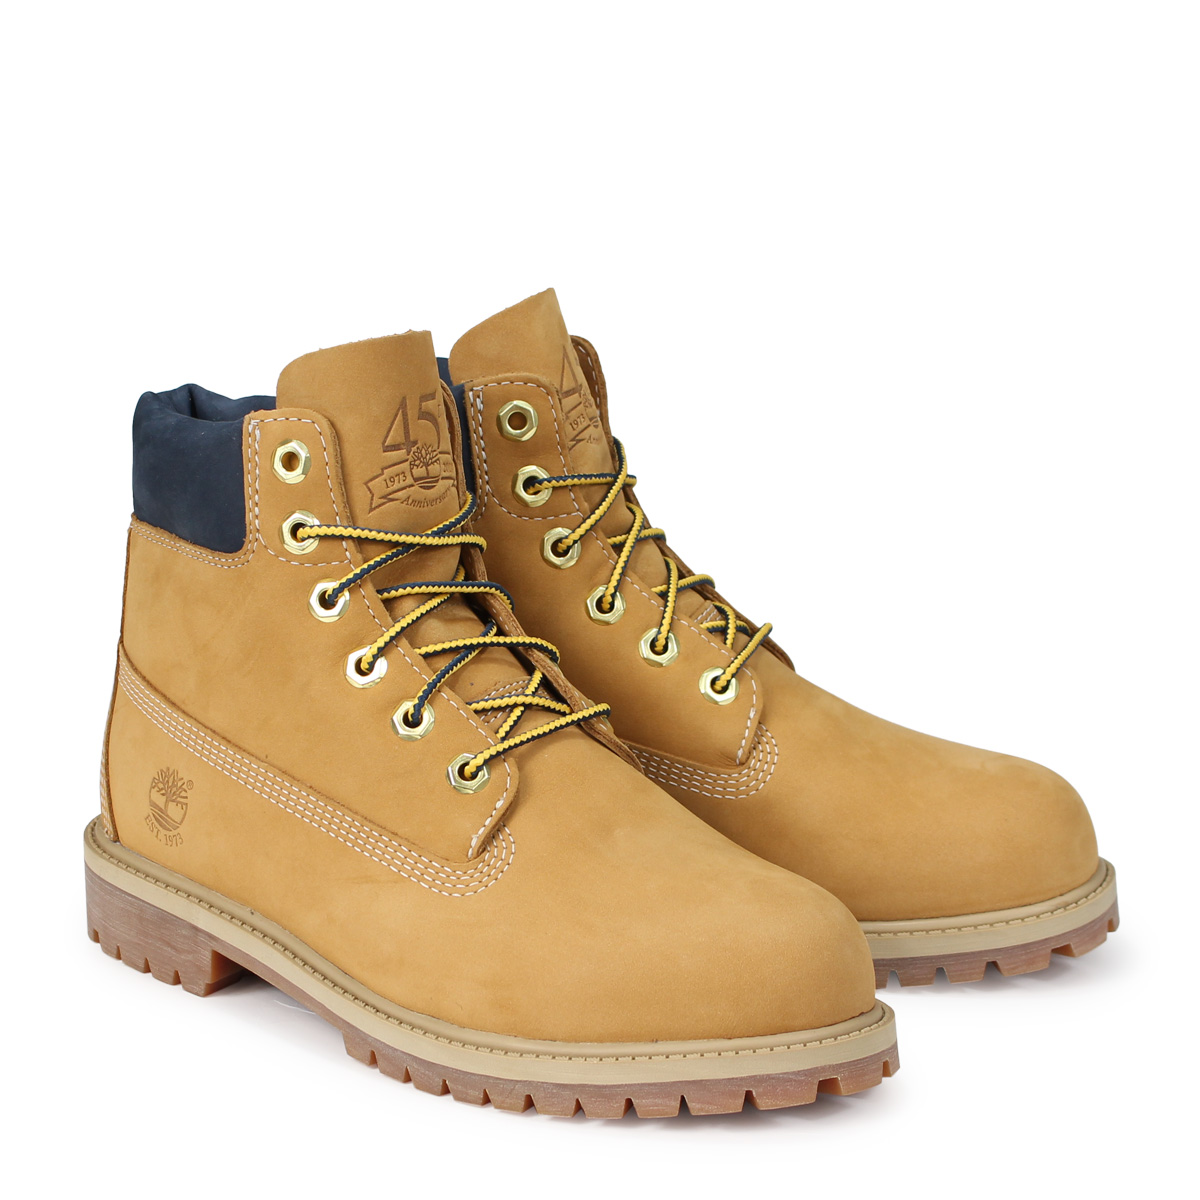 cdc0547e1097 Timberland JUNIOR 6-INCH PREMIUM WATERPROOF BOOTS Timberland boots Lady s 6  inches kids A1VE5 W ワイズウィート  10 11 Shinnyu load   1810